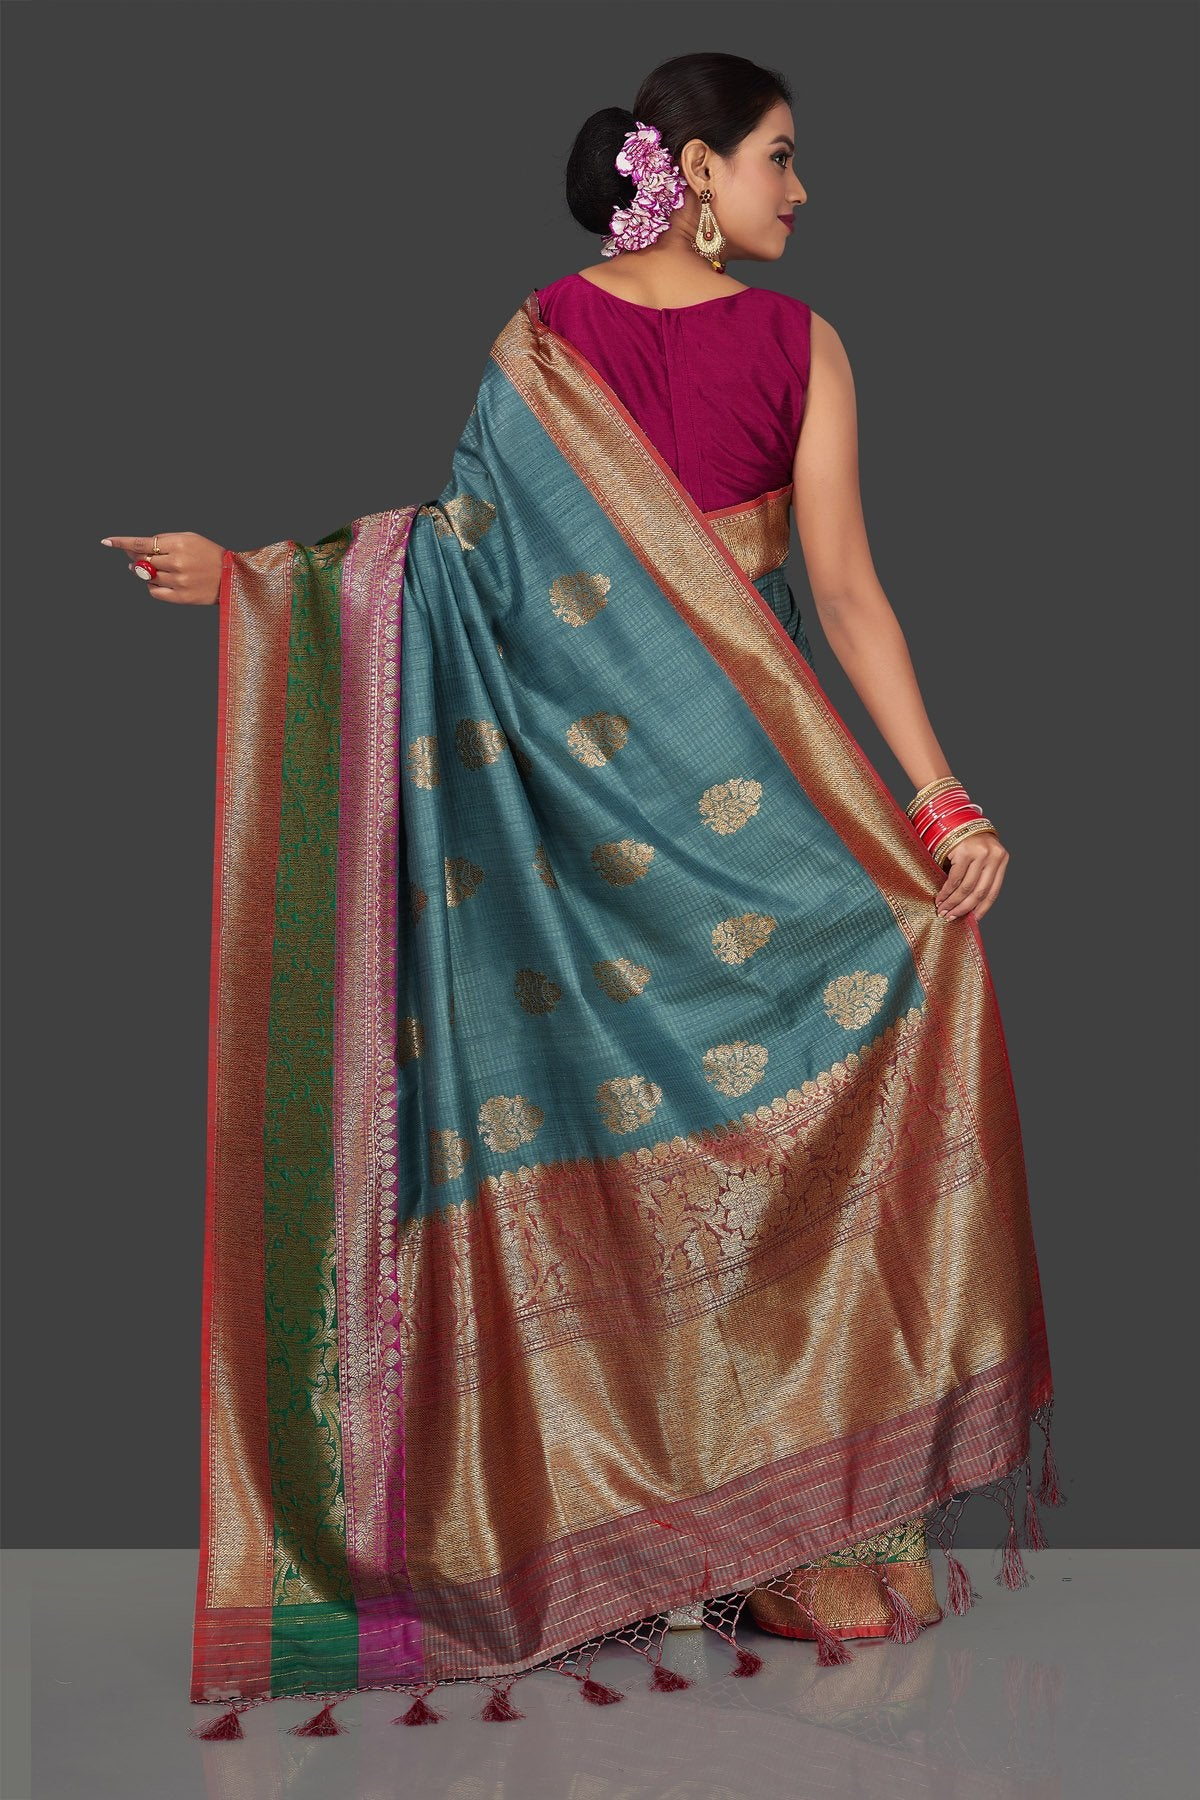 Buy gorgeous steel blue tassar Banarasi saree online in USA with antique zari border and zari buta. Garner compliments on weddings and special occasions with exquisite Banarasi sarees, handwoven silk sarees, tussar sarees from Pure Elegance Indian fashion store in USA.-back